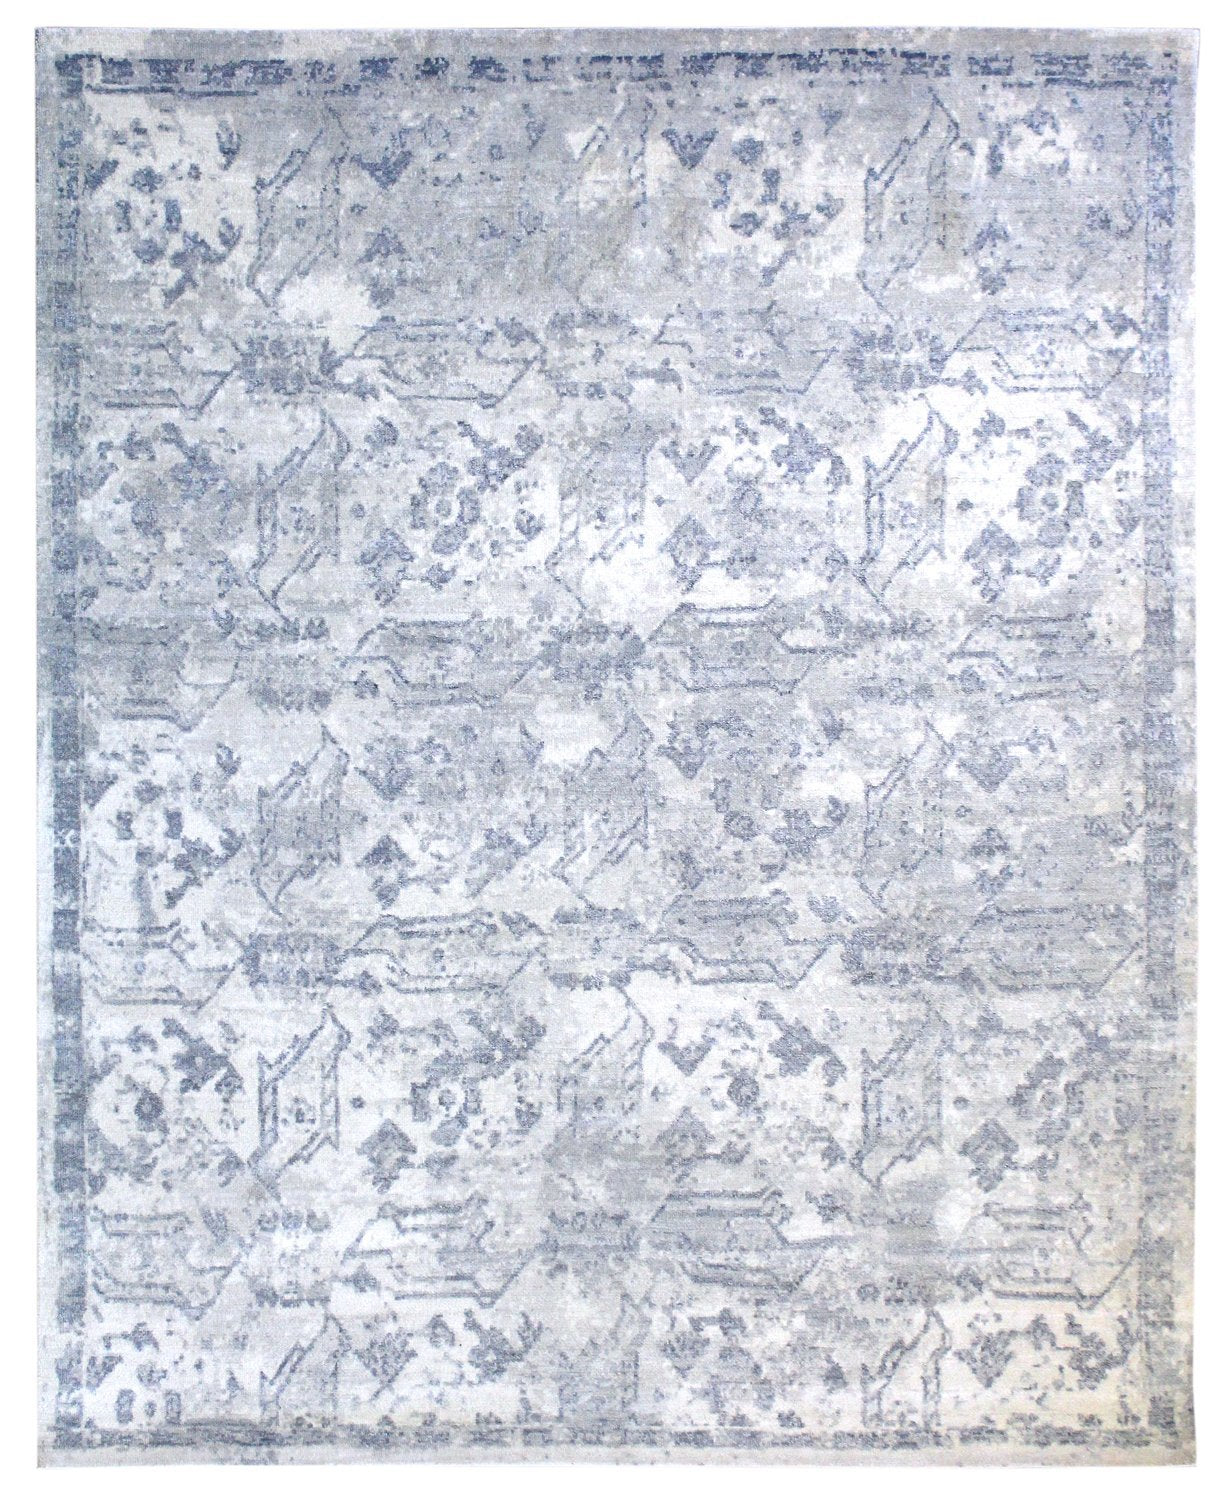 Lotto Handwoven Transitional Rug